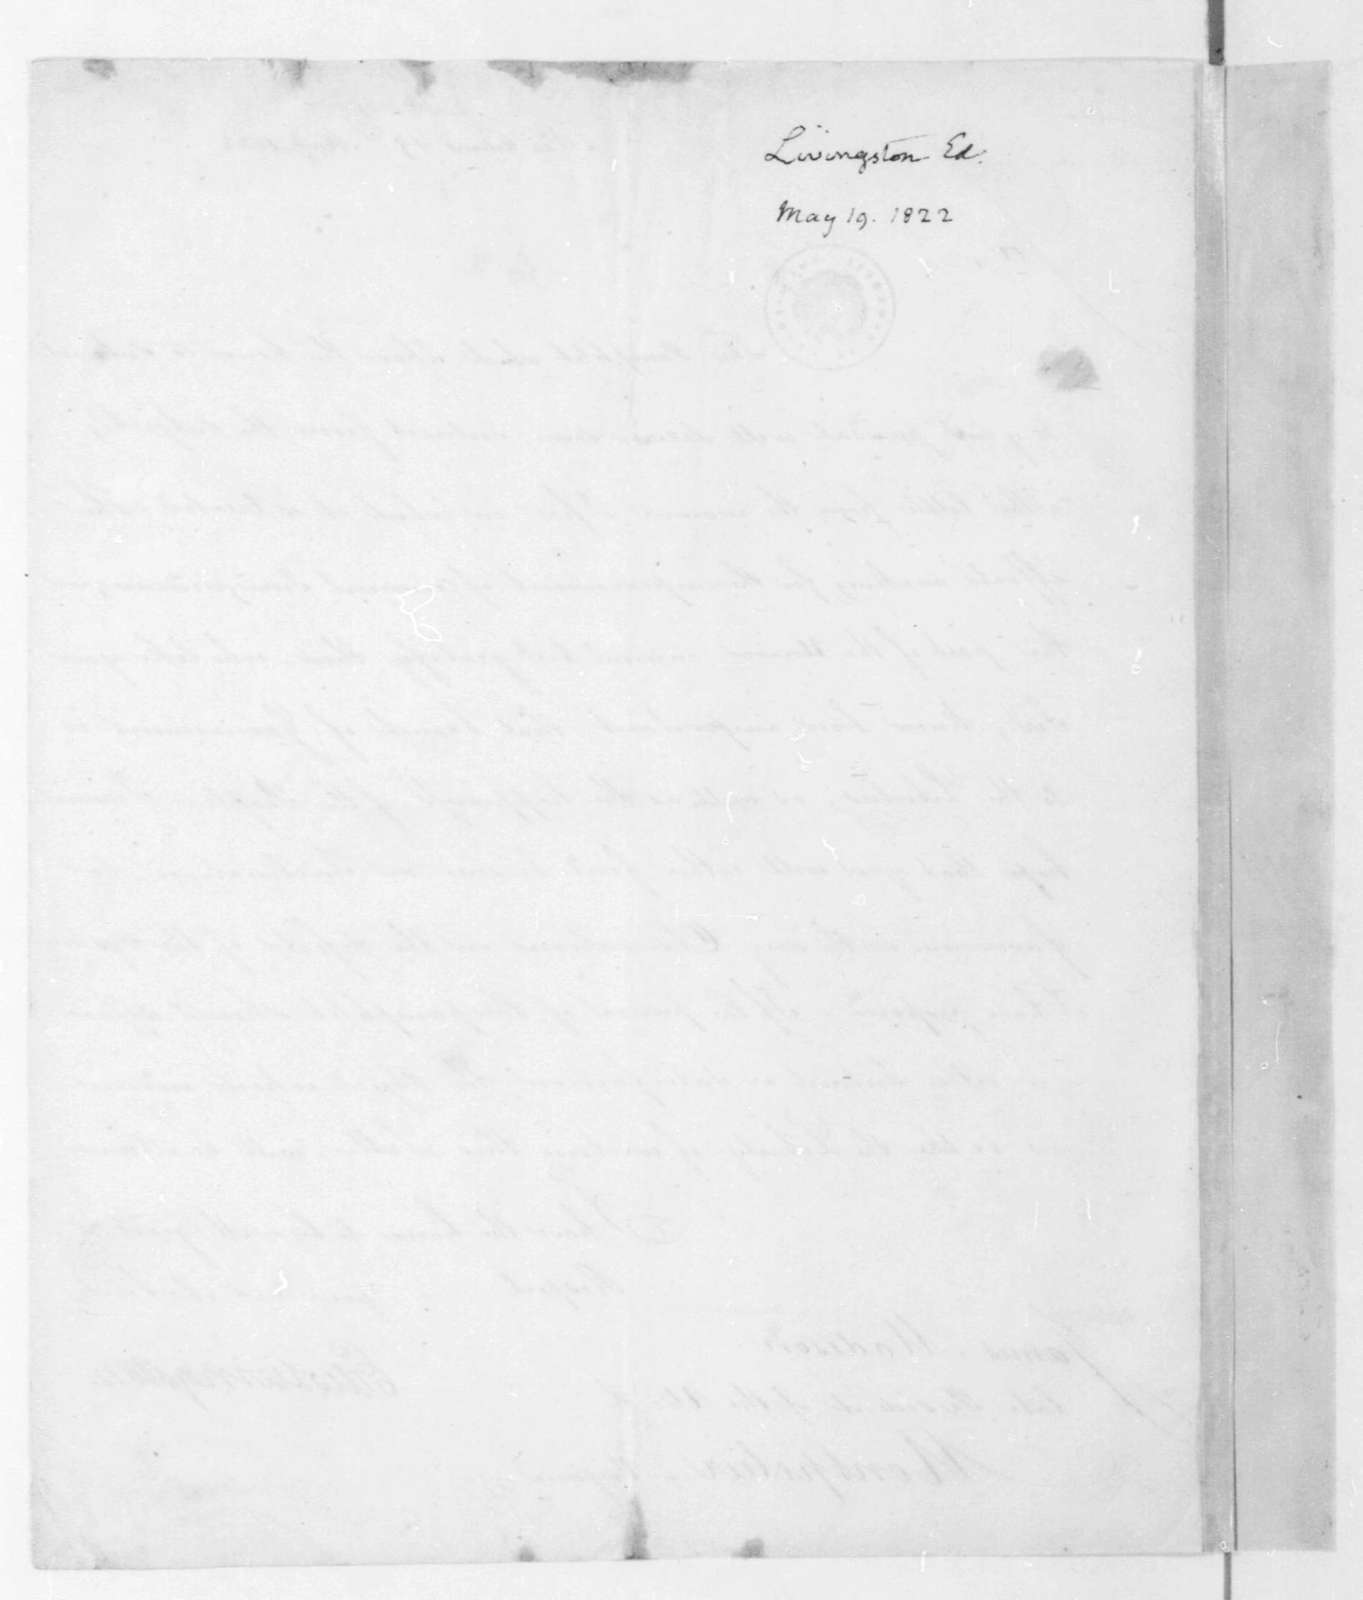 Edward Livingston to James Madison, May 19, 1822.